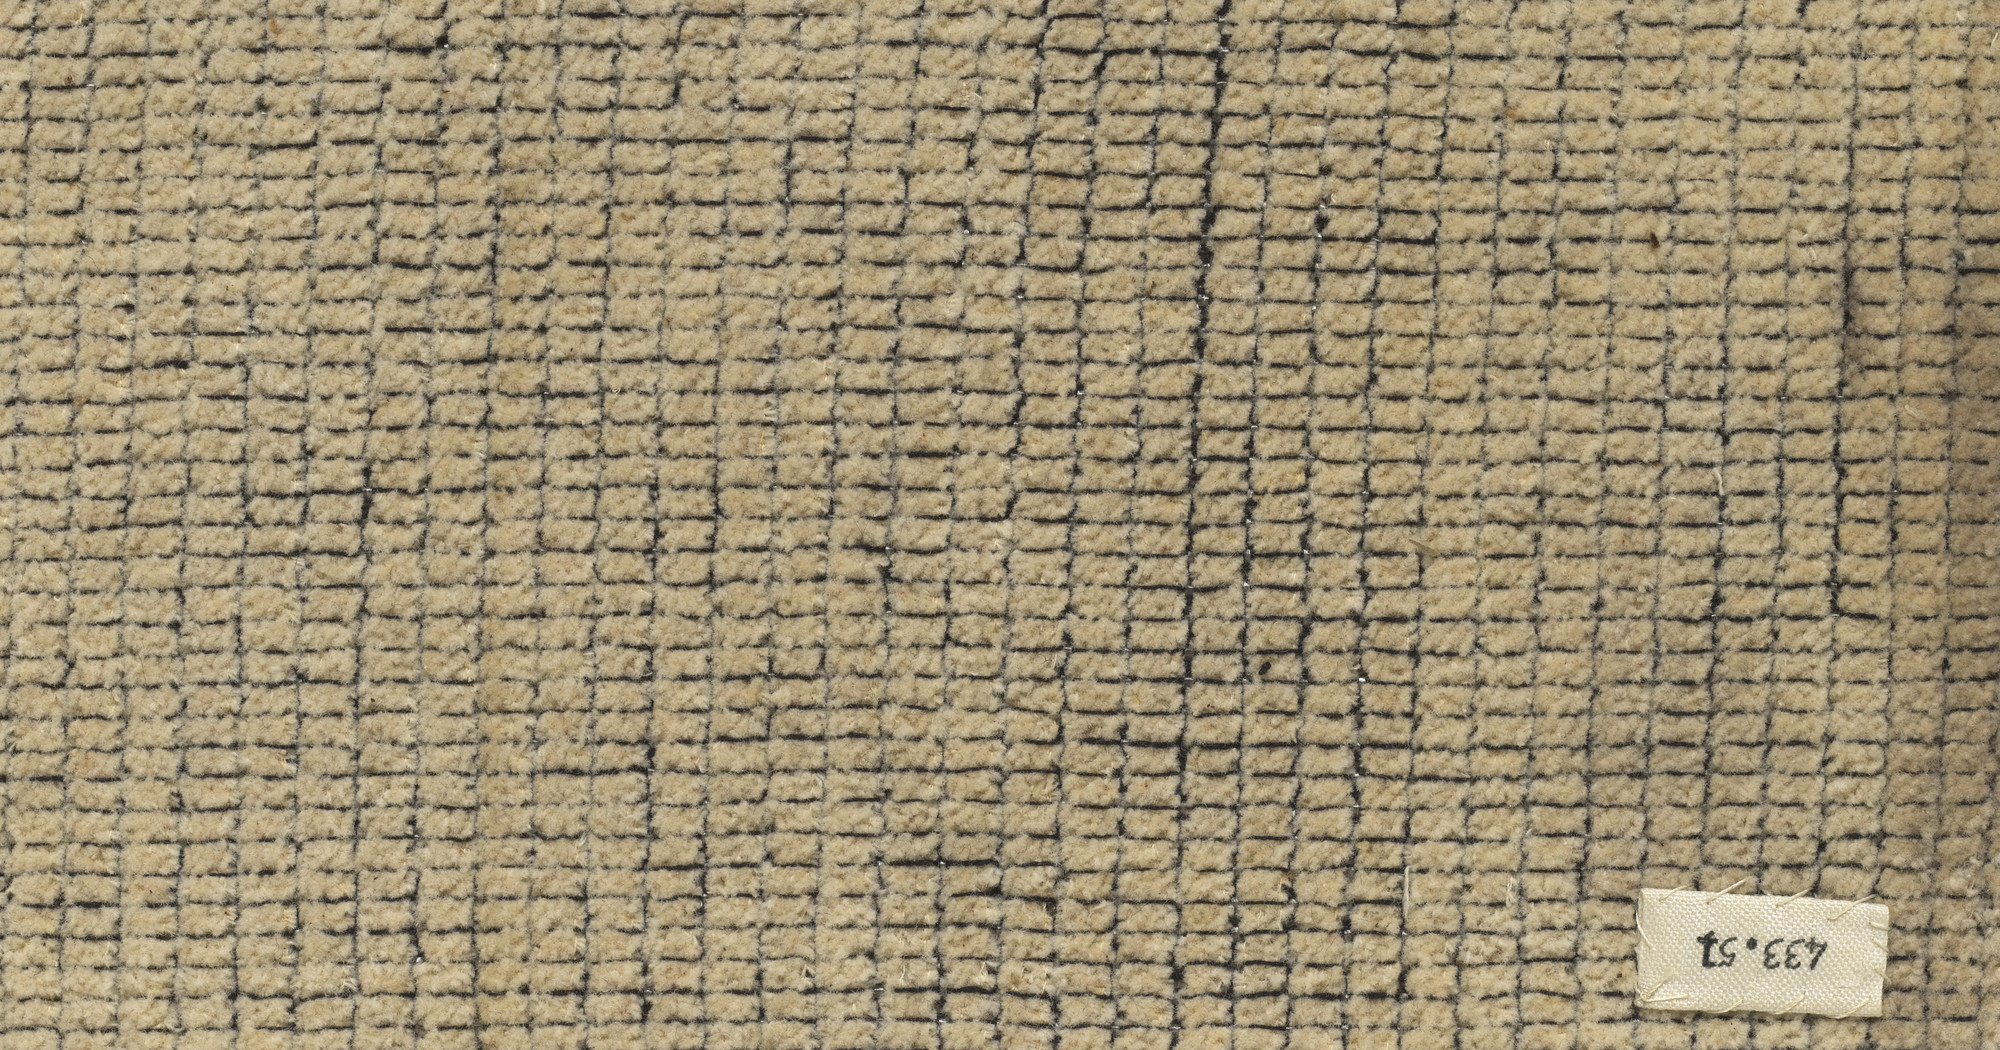 Anni Albers. Wall-Covering Material for the Bundesschule Auditorium in Bernau, Germany. 1929